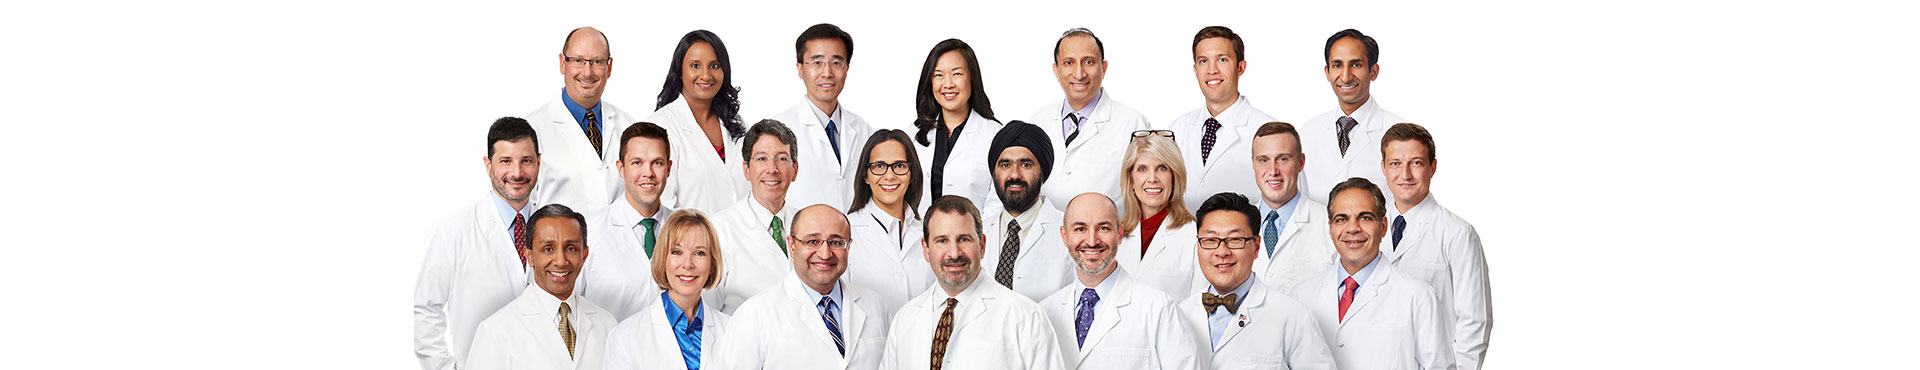 Baylor Scott & White Cardiology Consultants of Texas doctors group photo